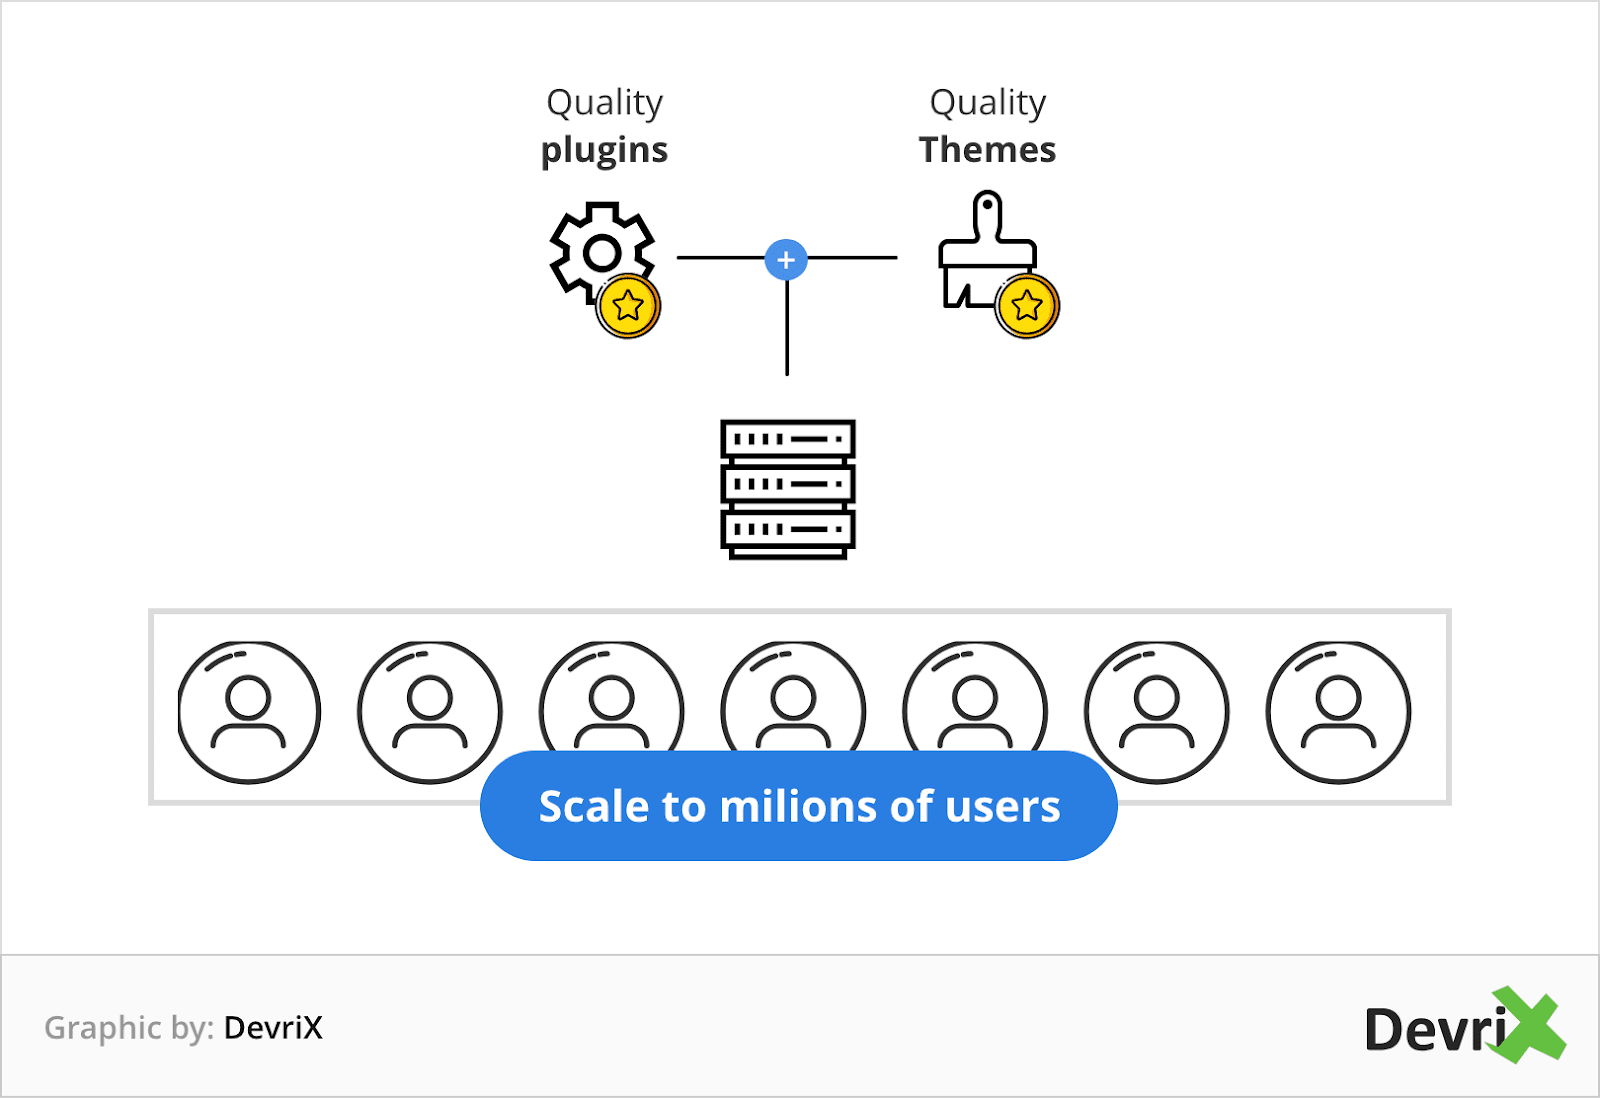 scaling a site to millions of users